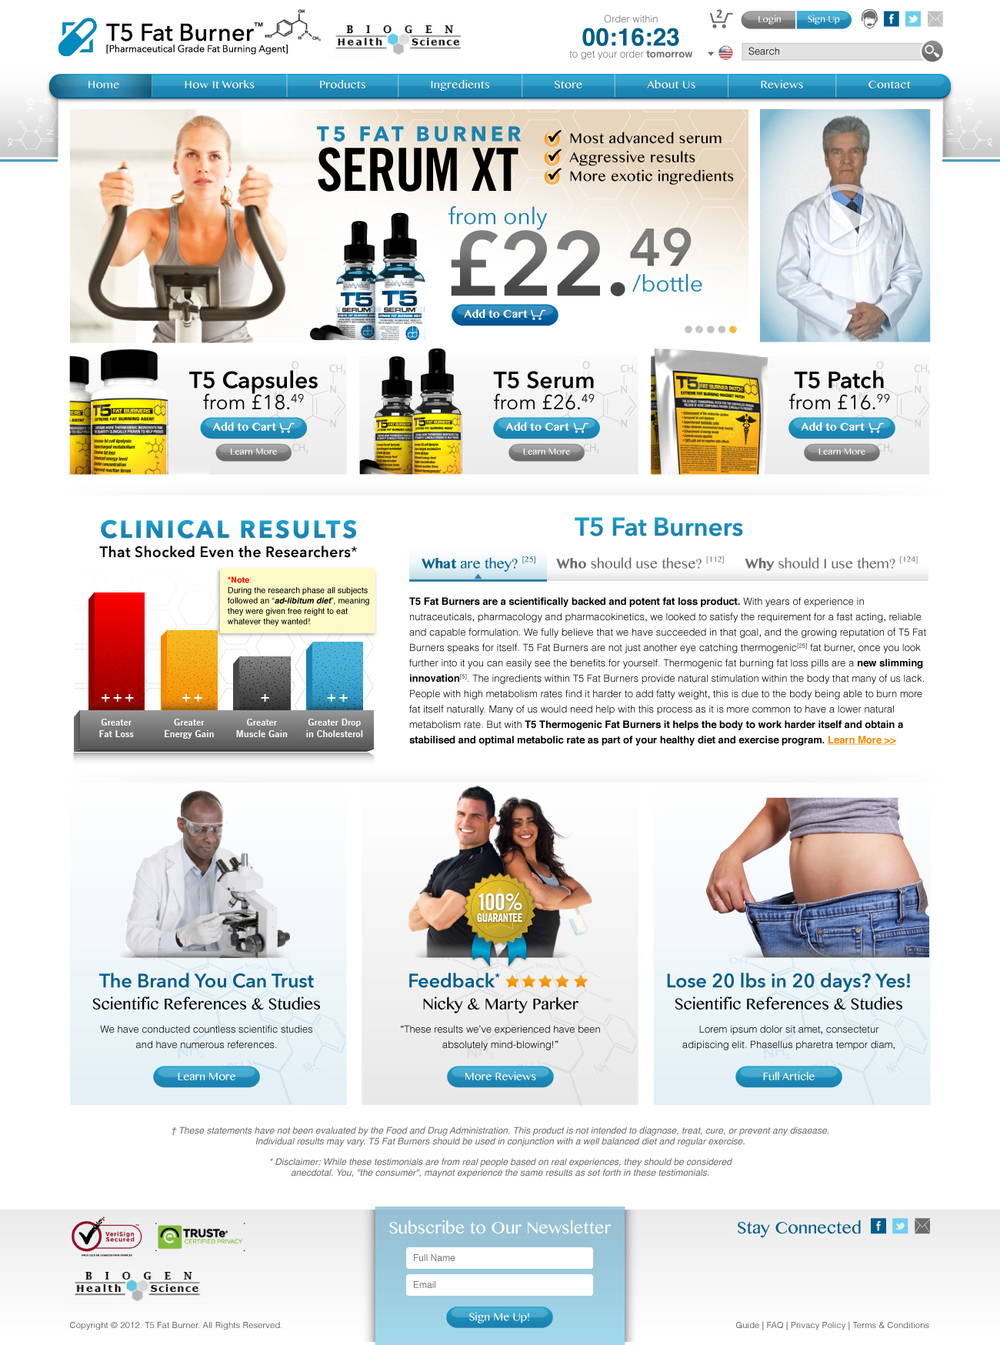 T5-Fat-Burners-Site-Home-Page-5.jpg